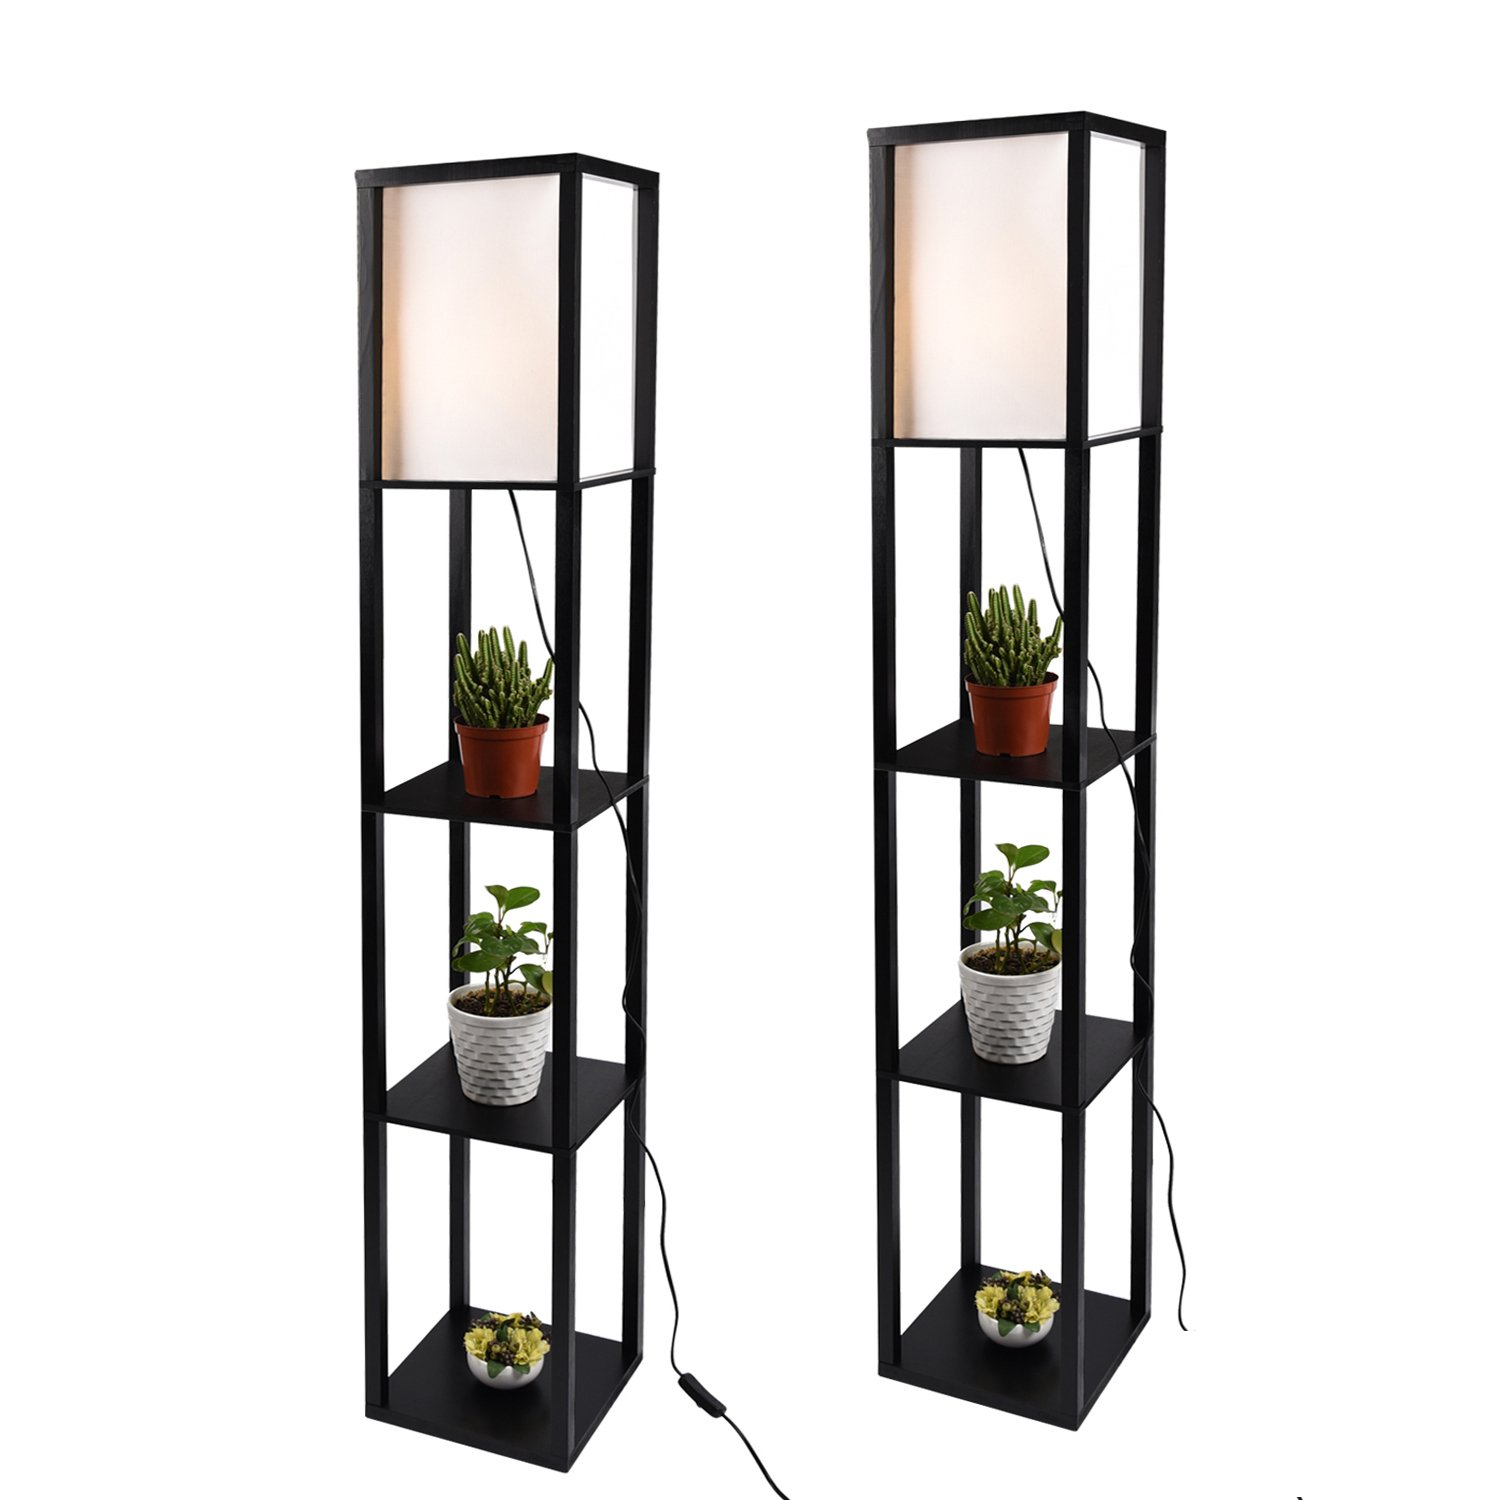 2X Simple Design Shelf Floor Lamp, White Shade, 63 Inch Height, with Open-Box Shelves, Black